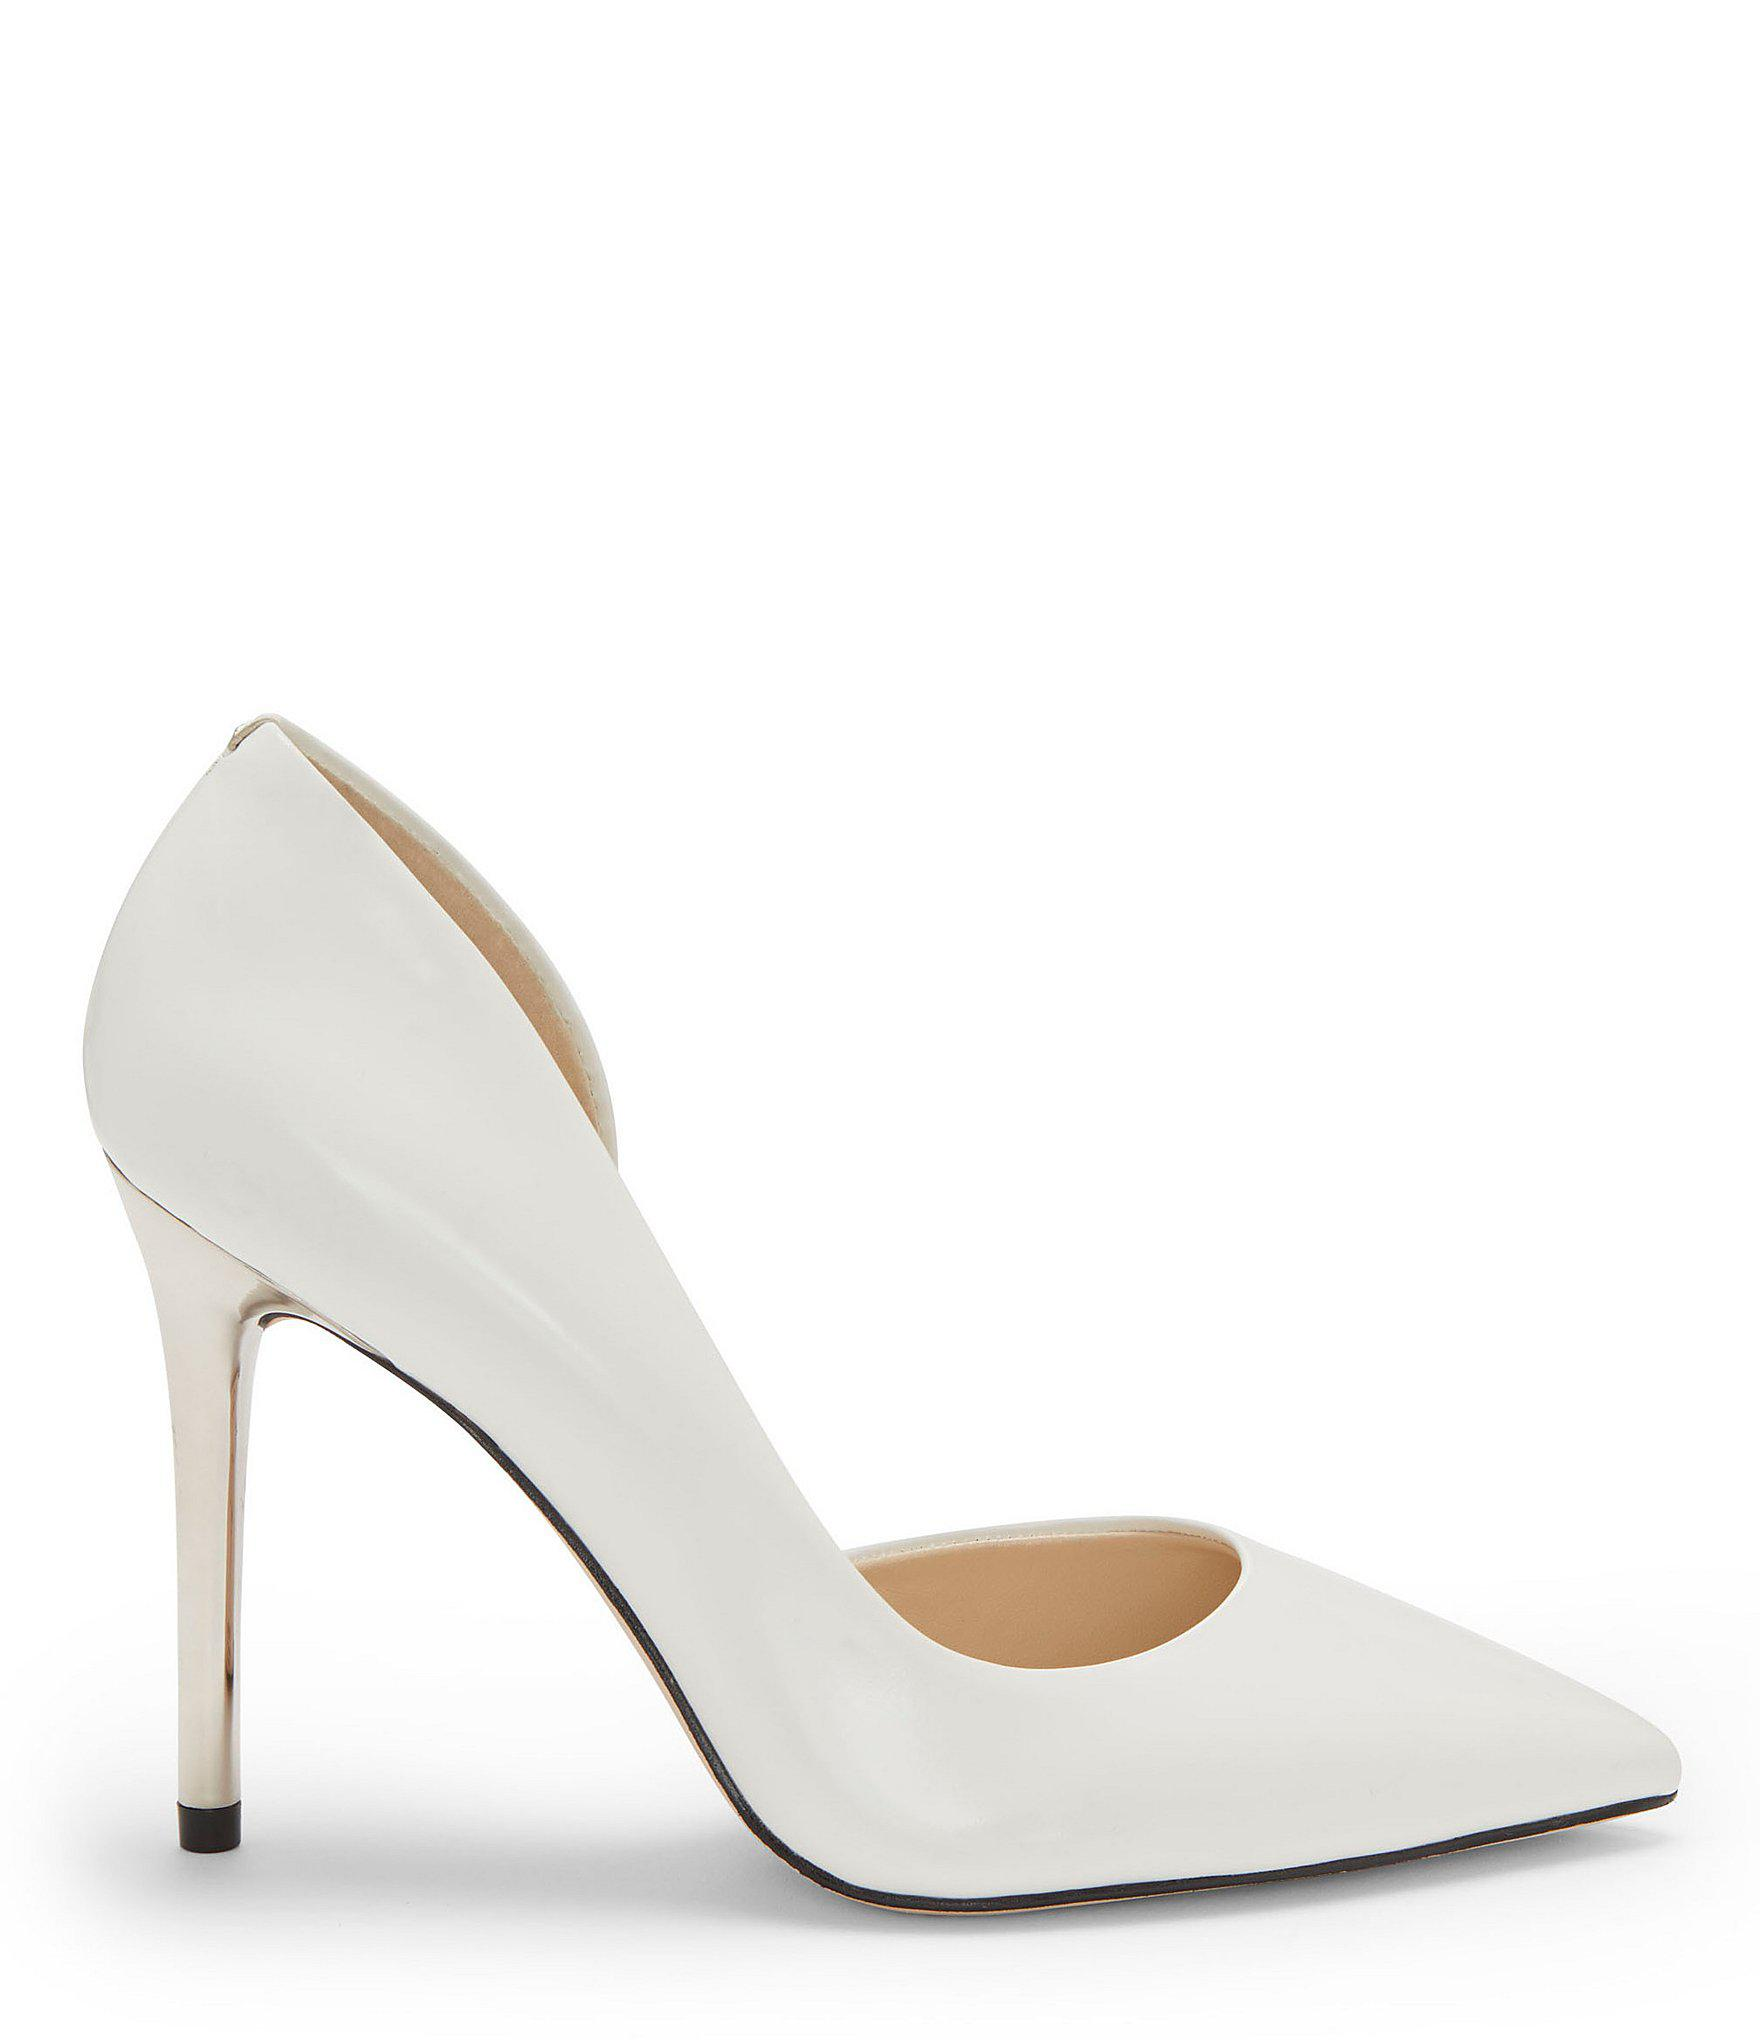 d7eea0ebeca Jessica Simpson - White Lucina Natal Leather Pumps - Lyst. View fullscreen